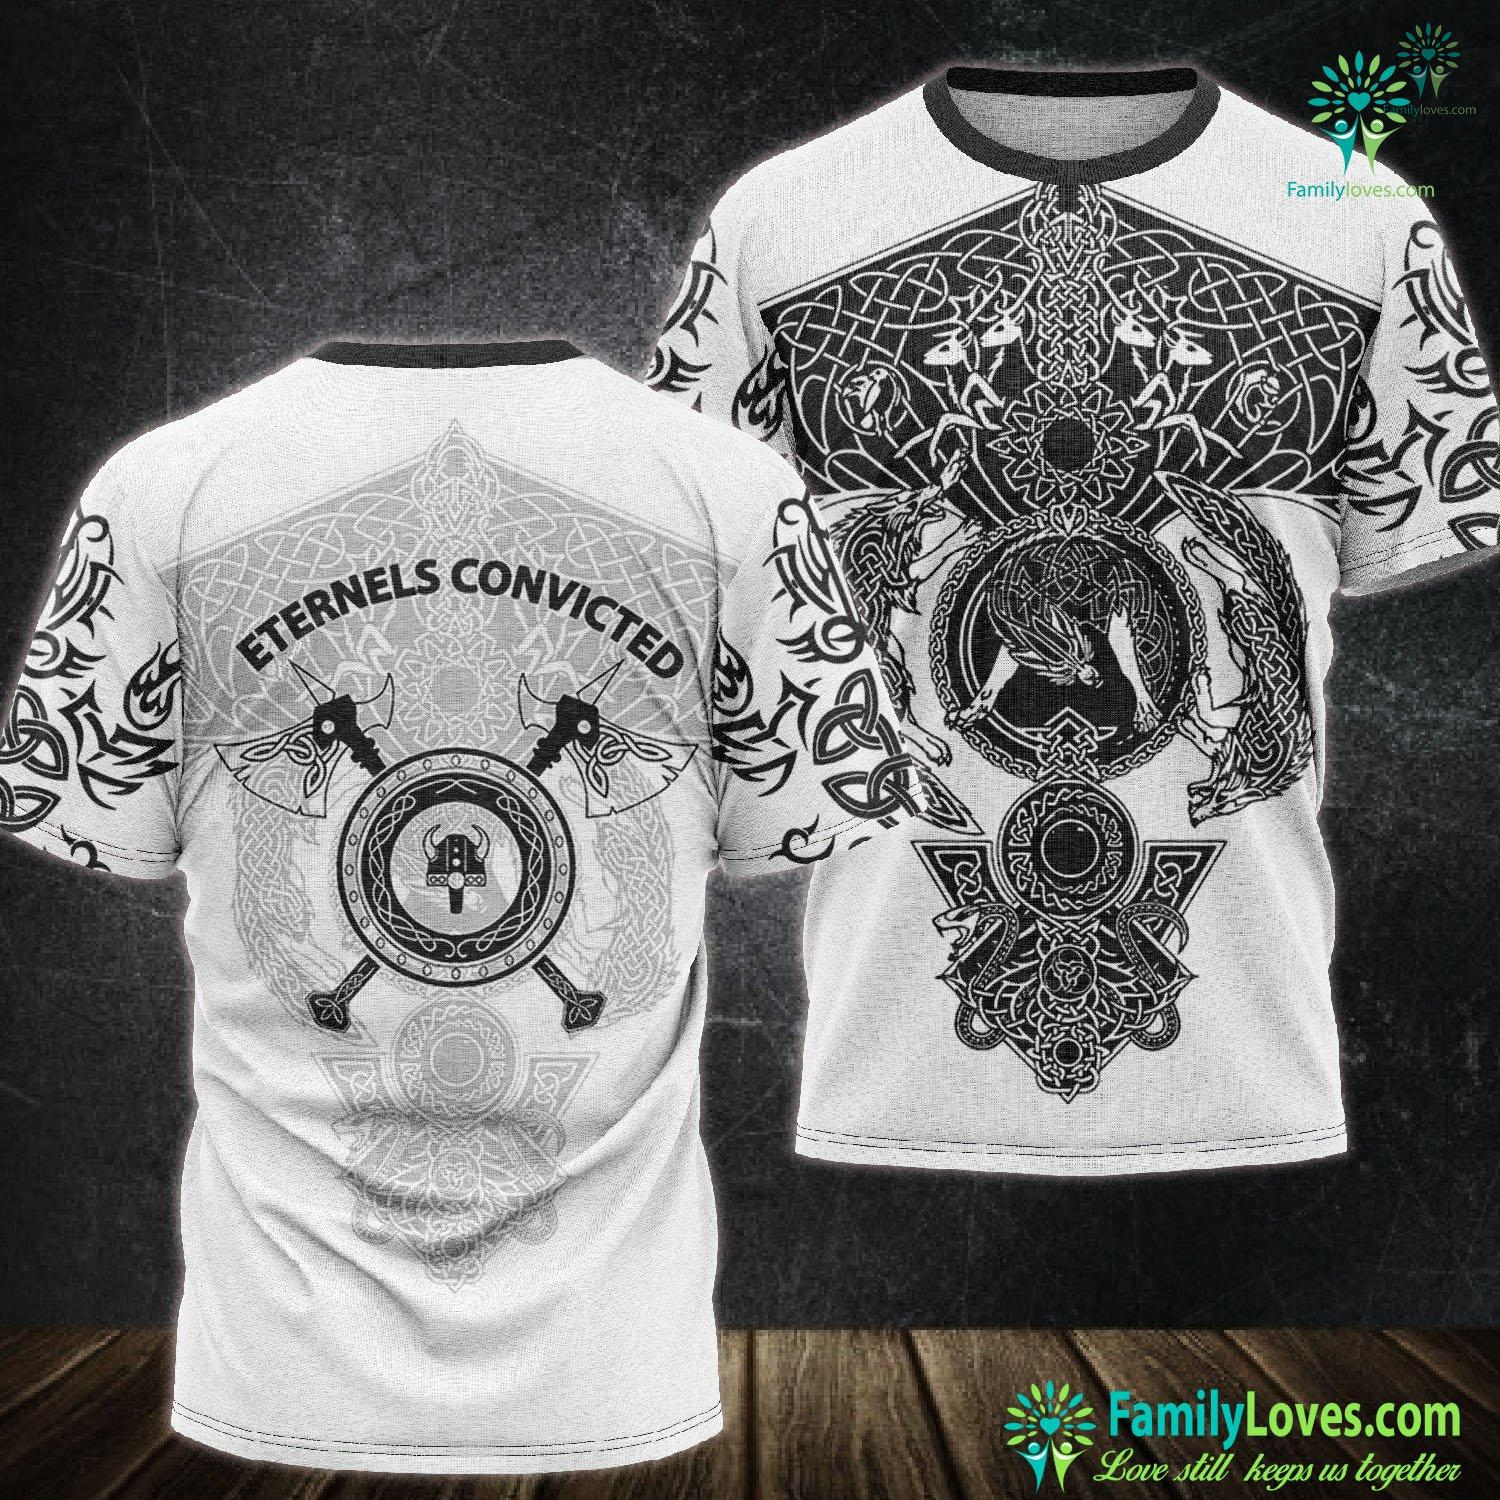 Viking Eternels Convicted 3D All Over Printed Tshirt Familyloves.com